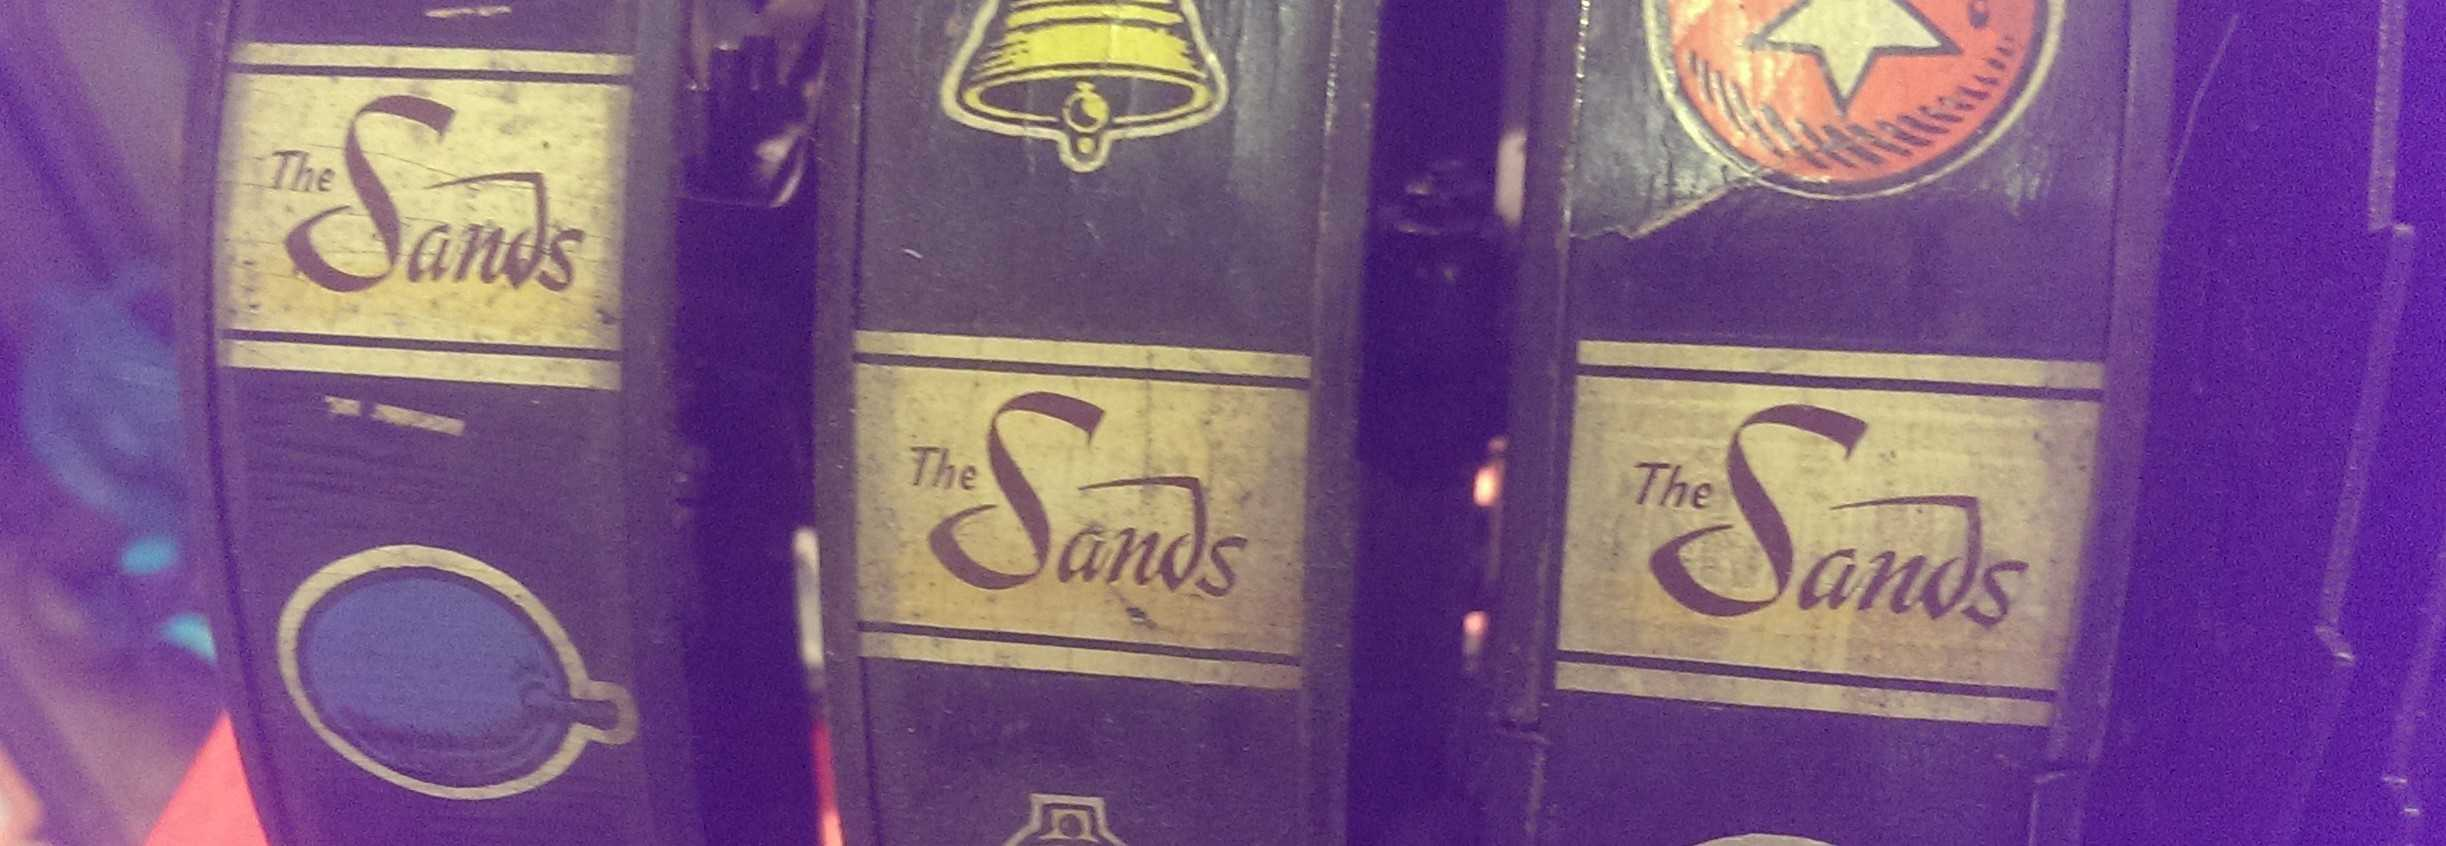 Jennings chief - The sands + star chief (1)